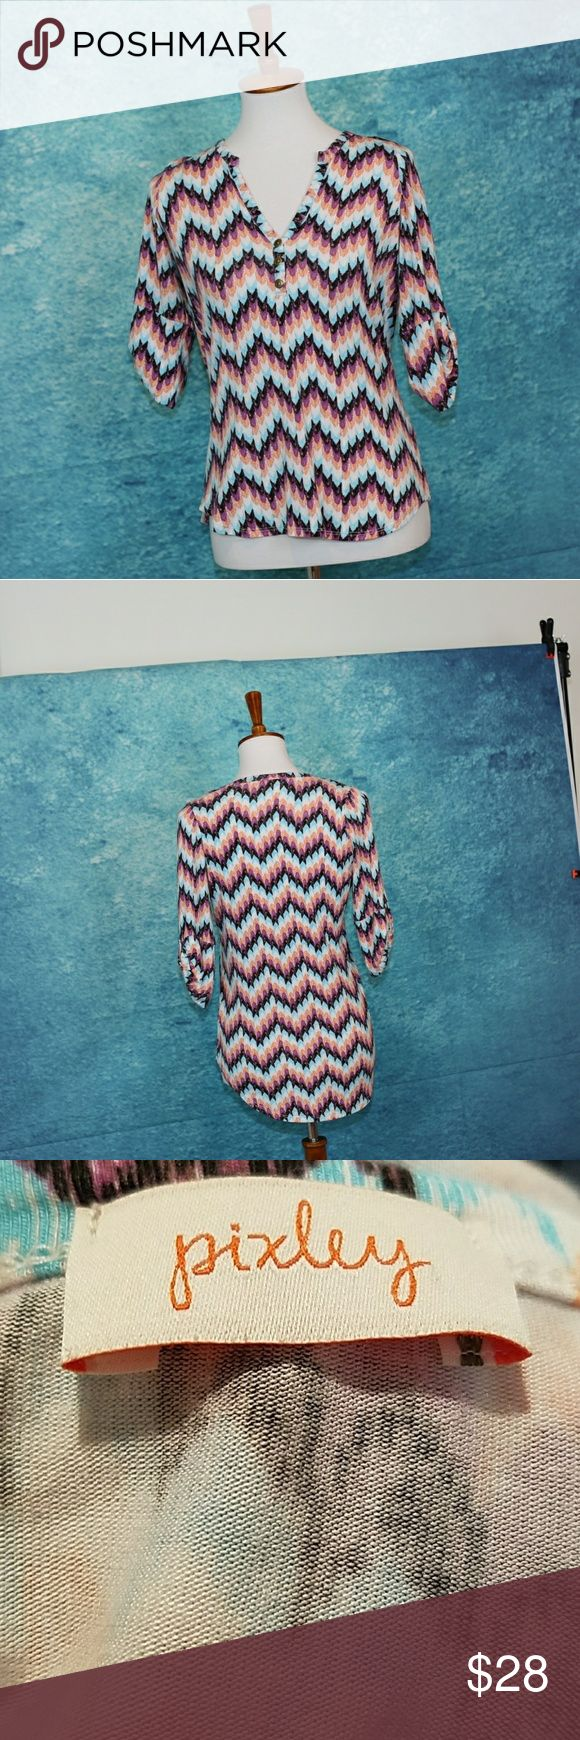 Stitch Fix Pixley chevron blouse. Brass buttons. S Stitch Fix Pixley chevron blouse. Brass buttons, adjustable button sleeves, soft fabric. Orange, black, white, blue, purple. S. Excellent condition. Pixley Tops Blouses